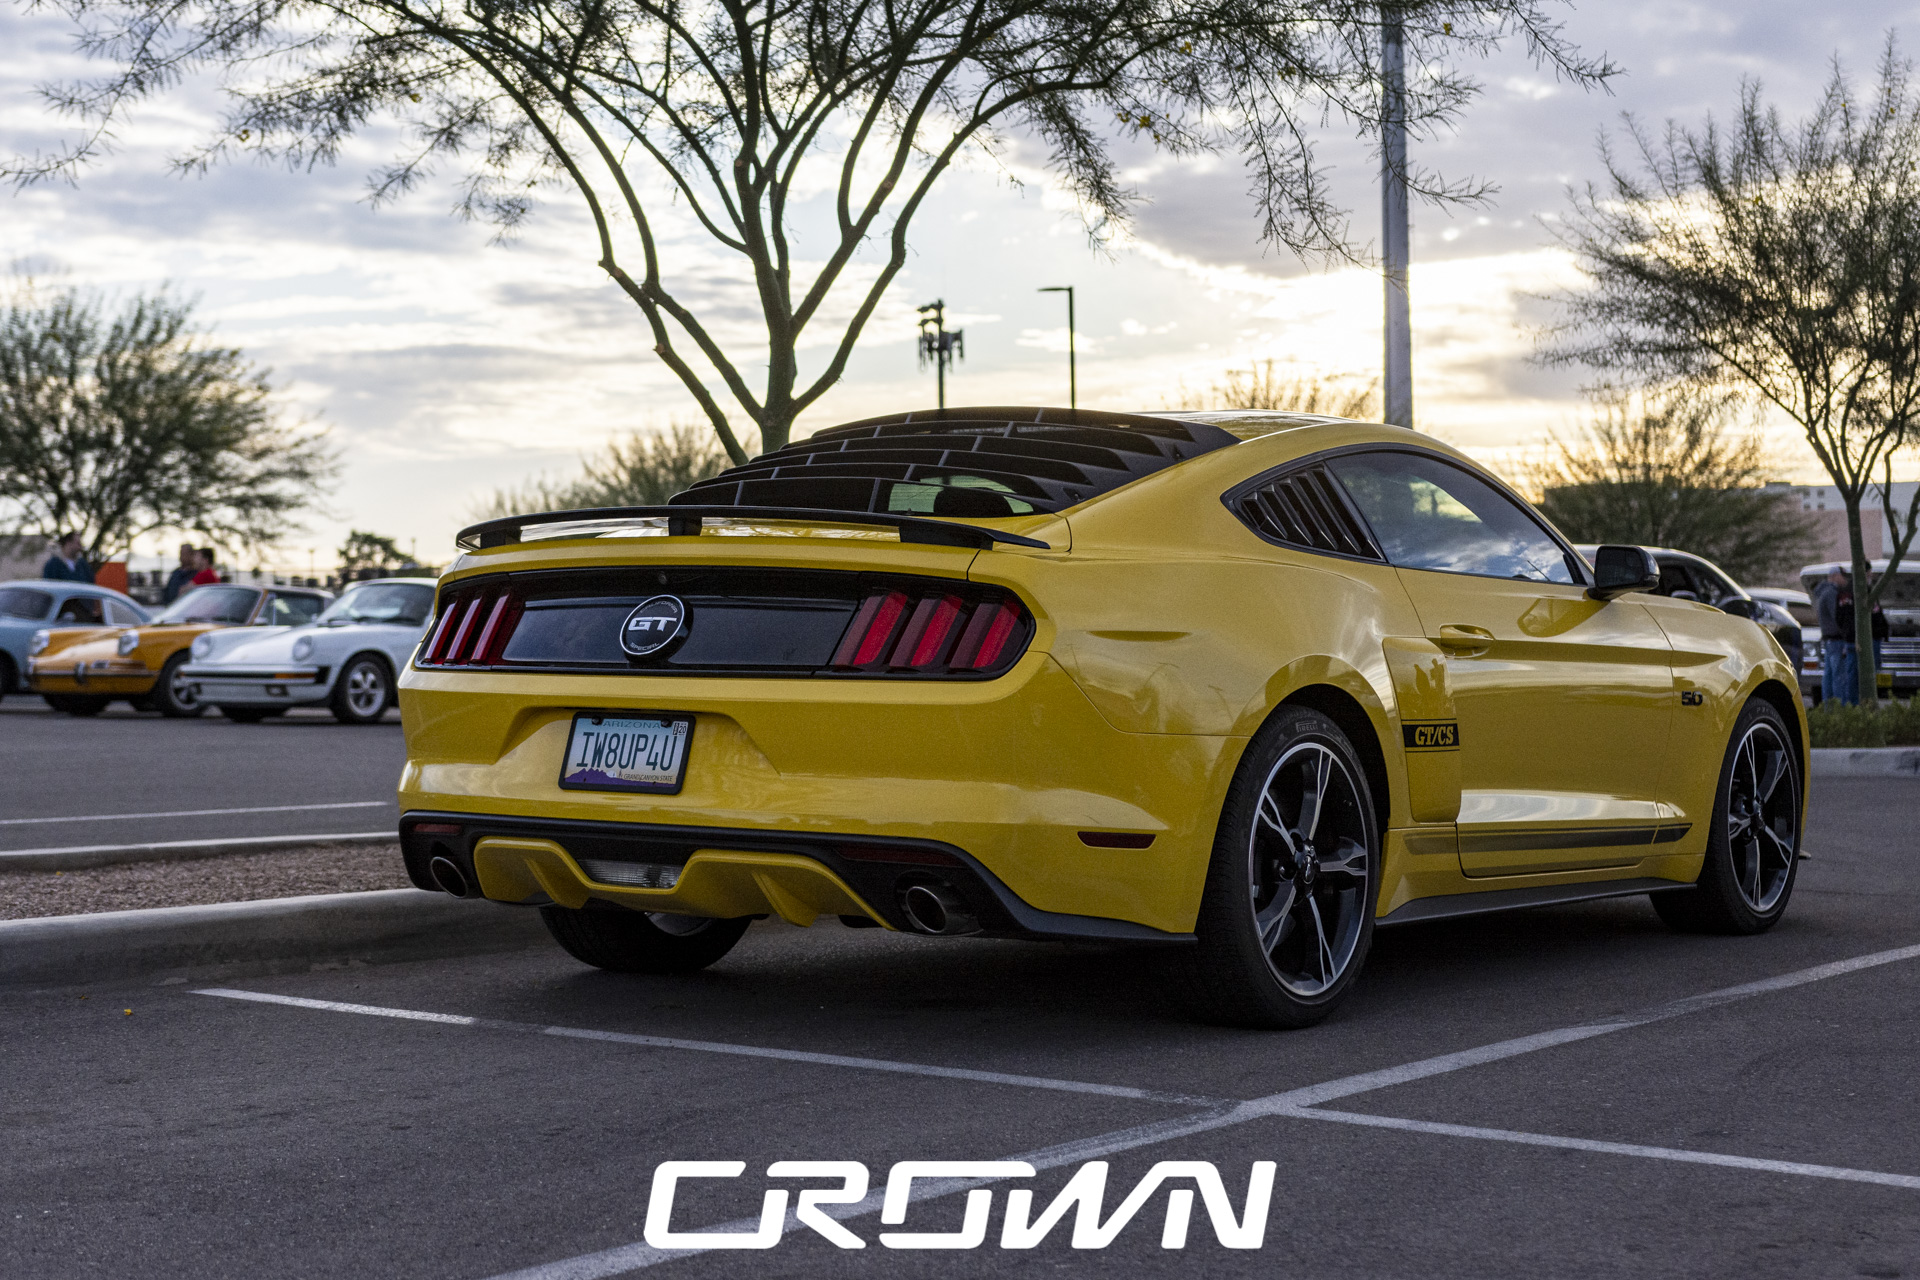 s550 Ford Mustang gt cs yellow tucson arizona